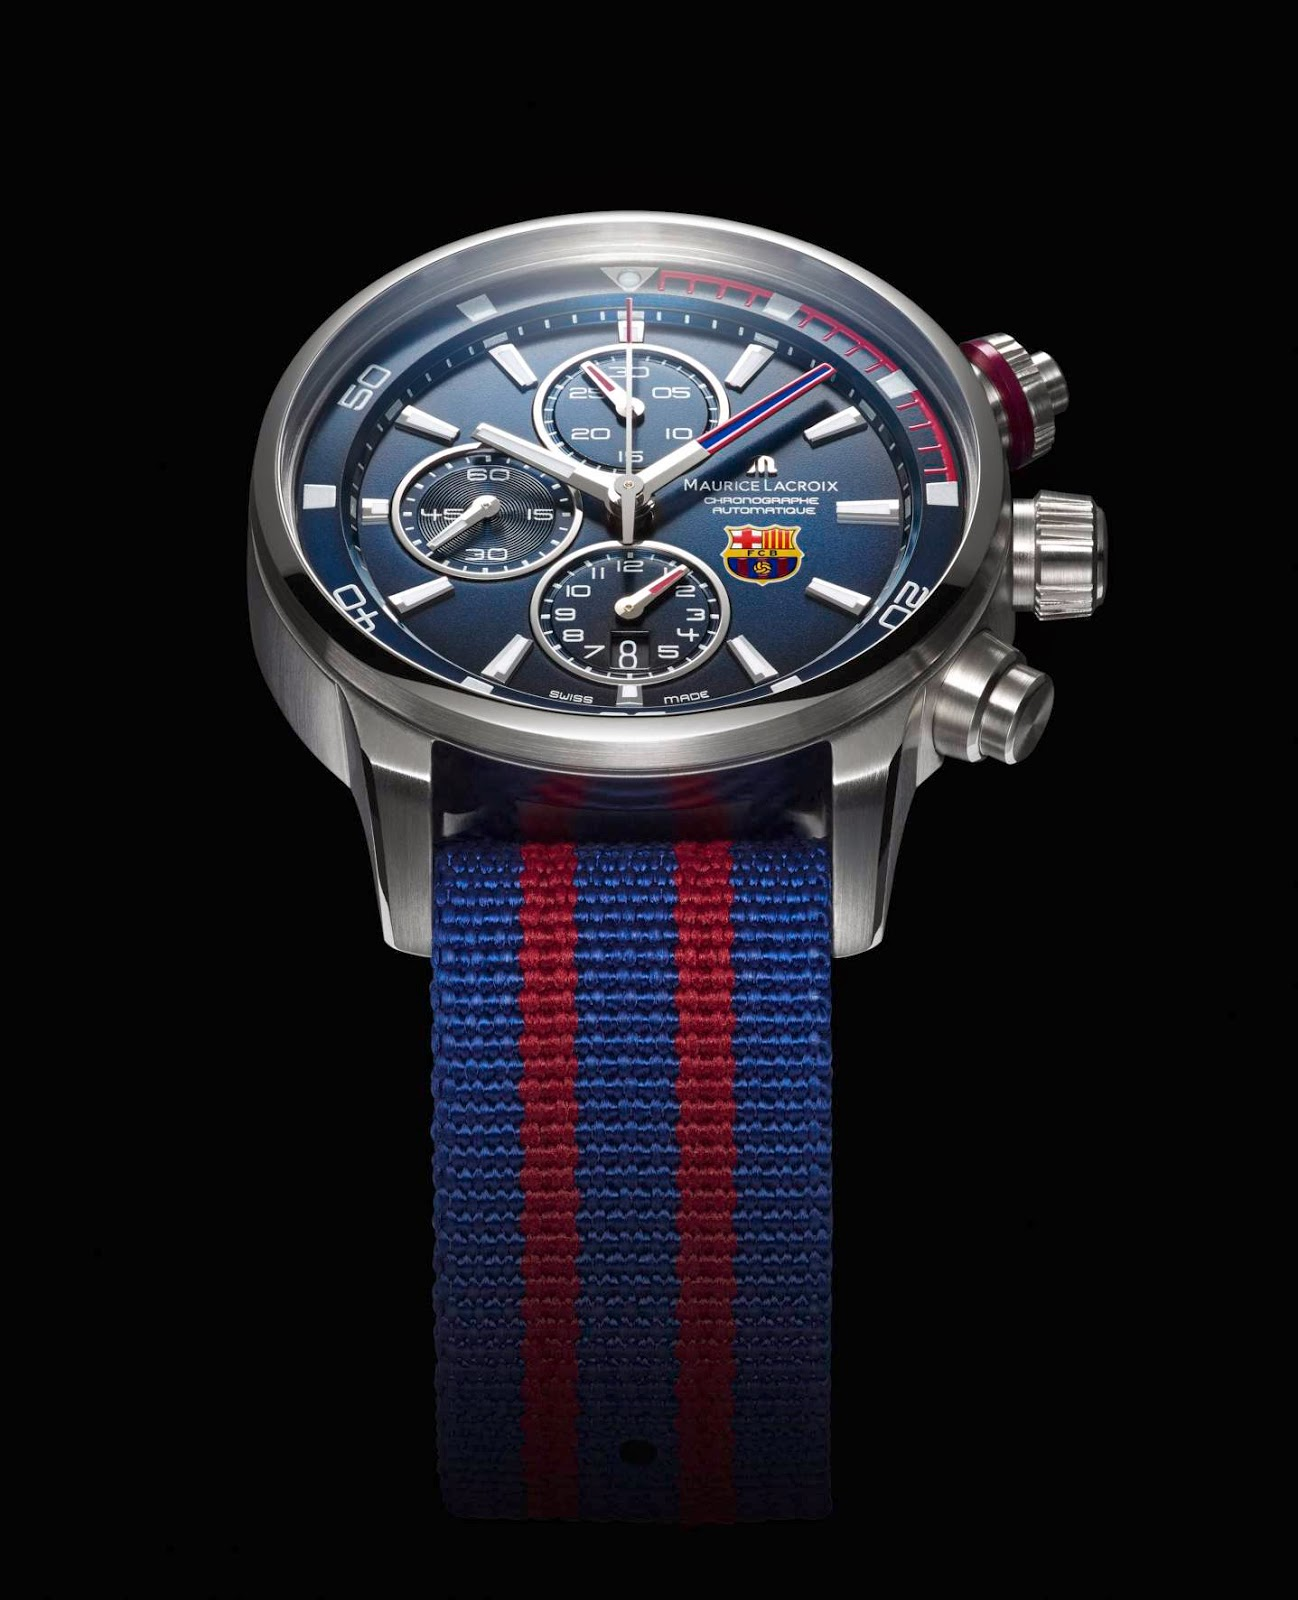 Maurice-Lacroix-FC-Barcelona-Special-Edition-Watch-Collection-Pontos-2.jpg